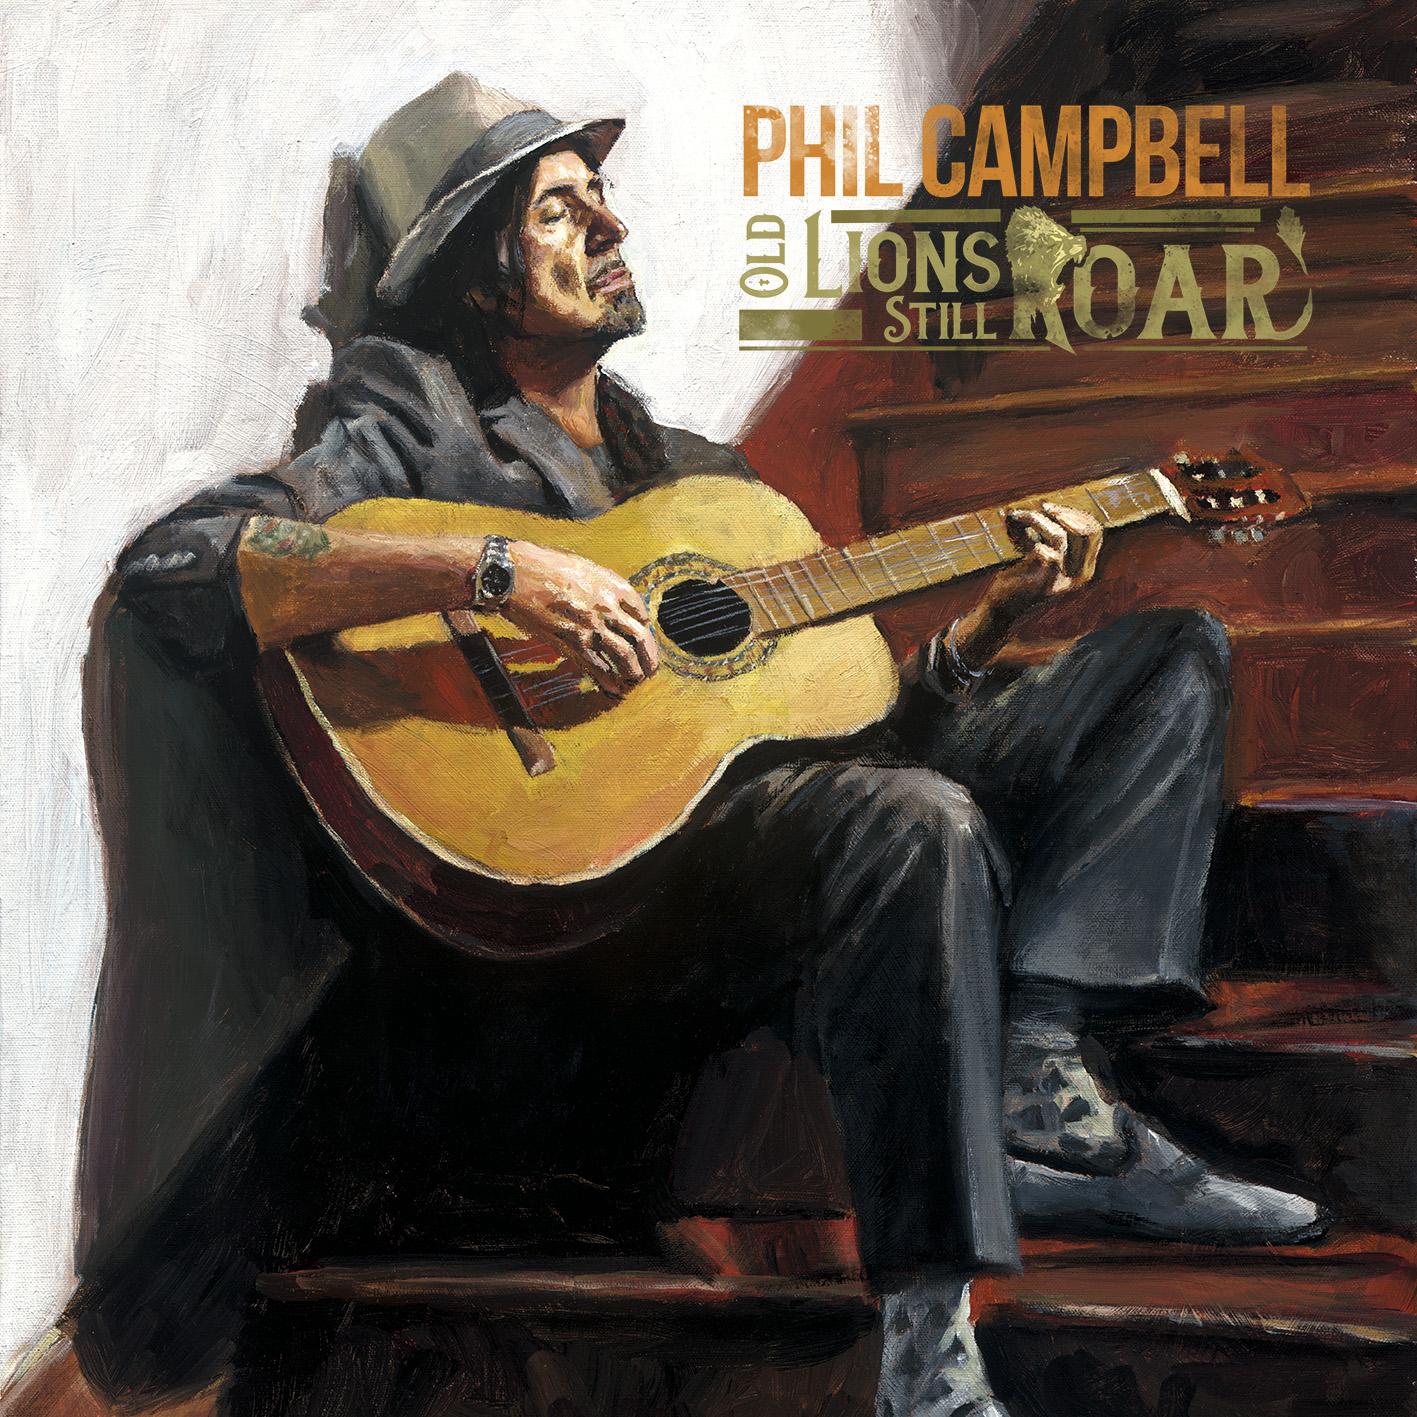 phil campbell - old lions pic 2